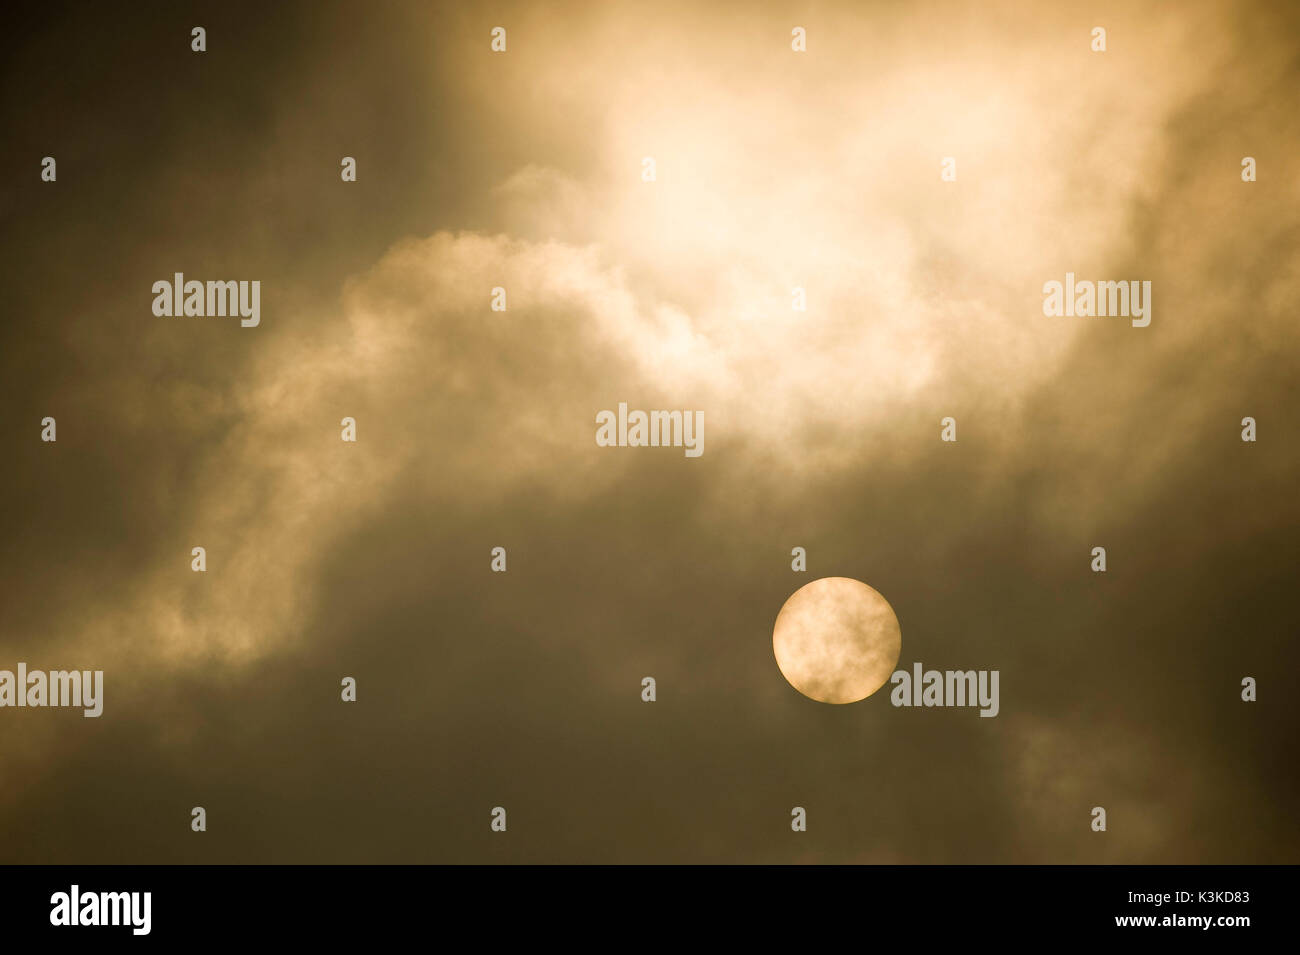 The sun concealed behind clouds - Stock Image